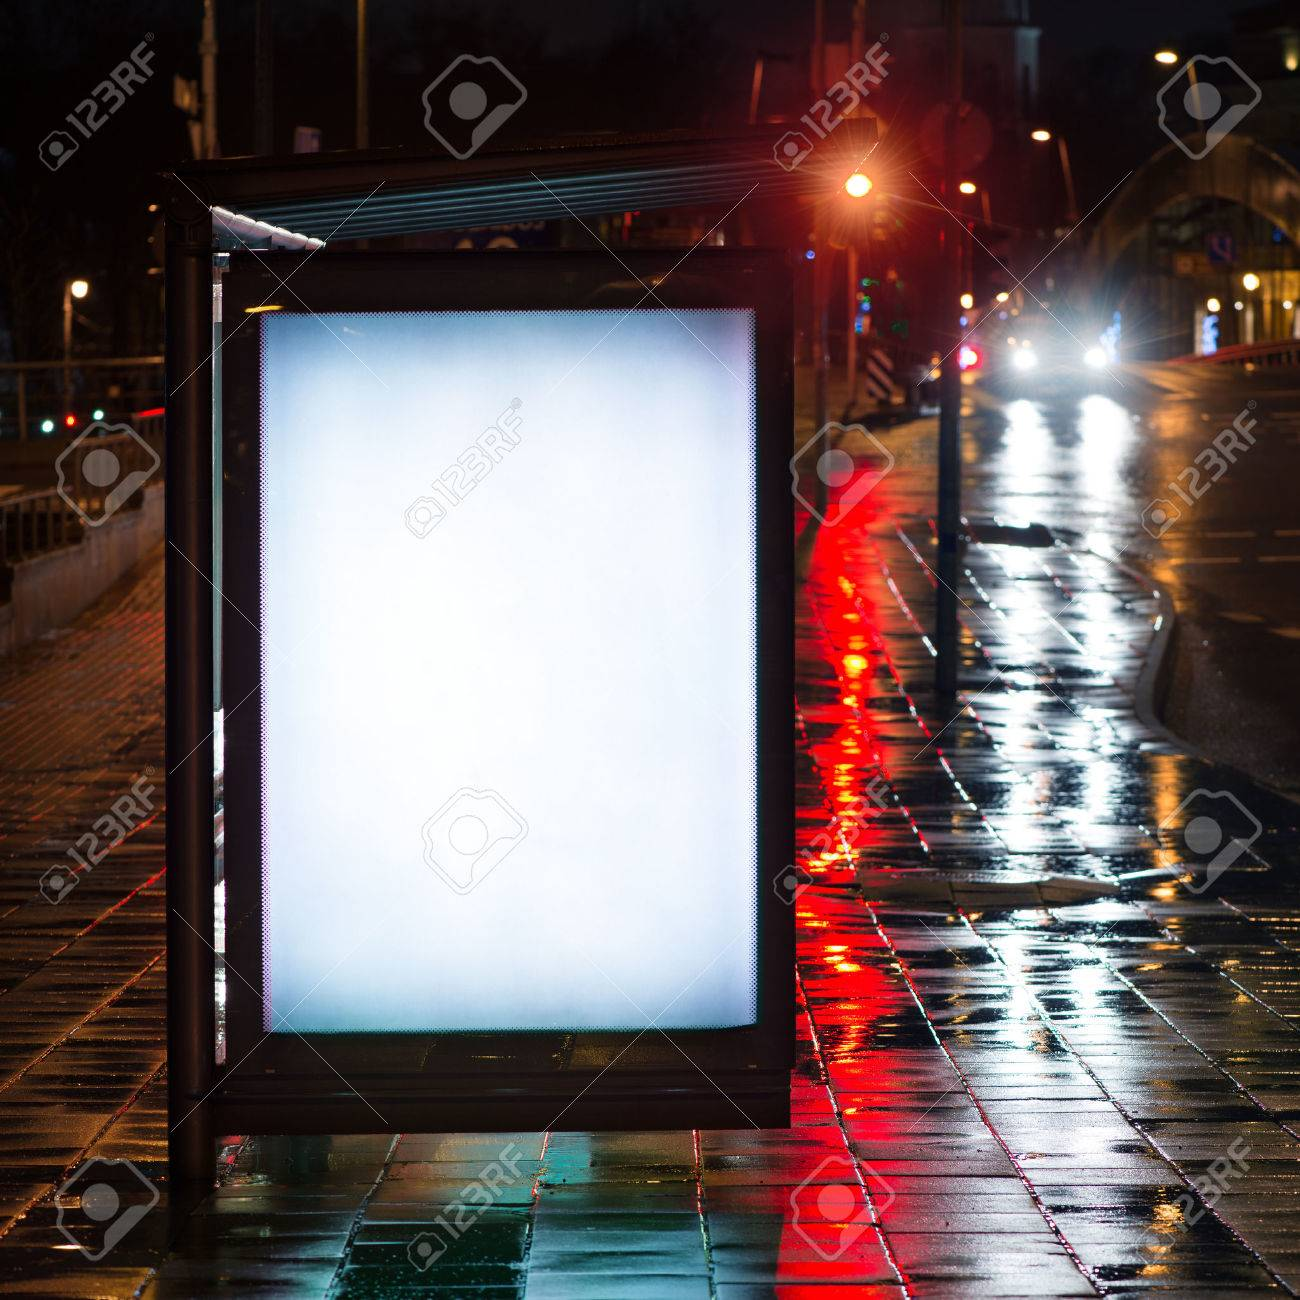 Blank bus stop advertising billboard in the city at night. Stock Photo - 53616418